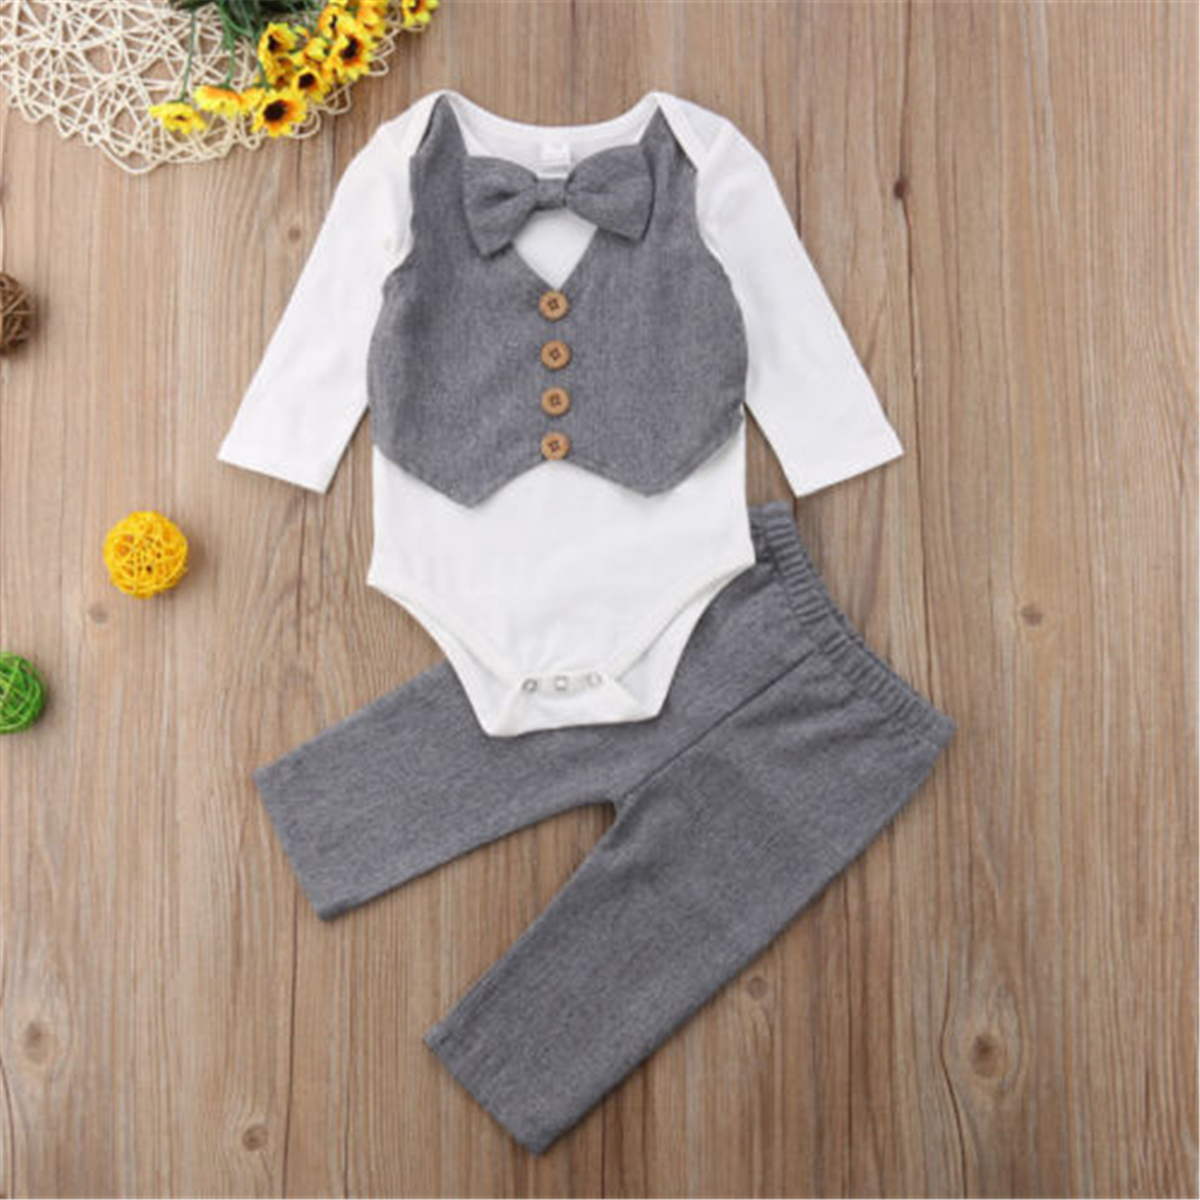 Emmababy Kids Baby Boy Gentleman Bow Tie Shirt Tops Romper+Pants Party Formal Set Clothes